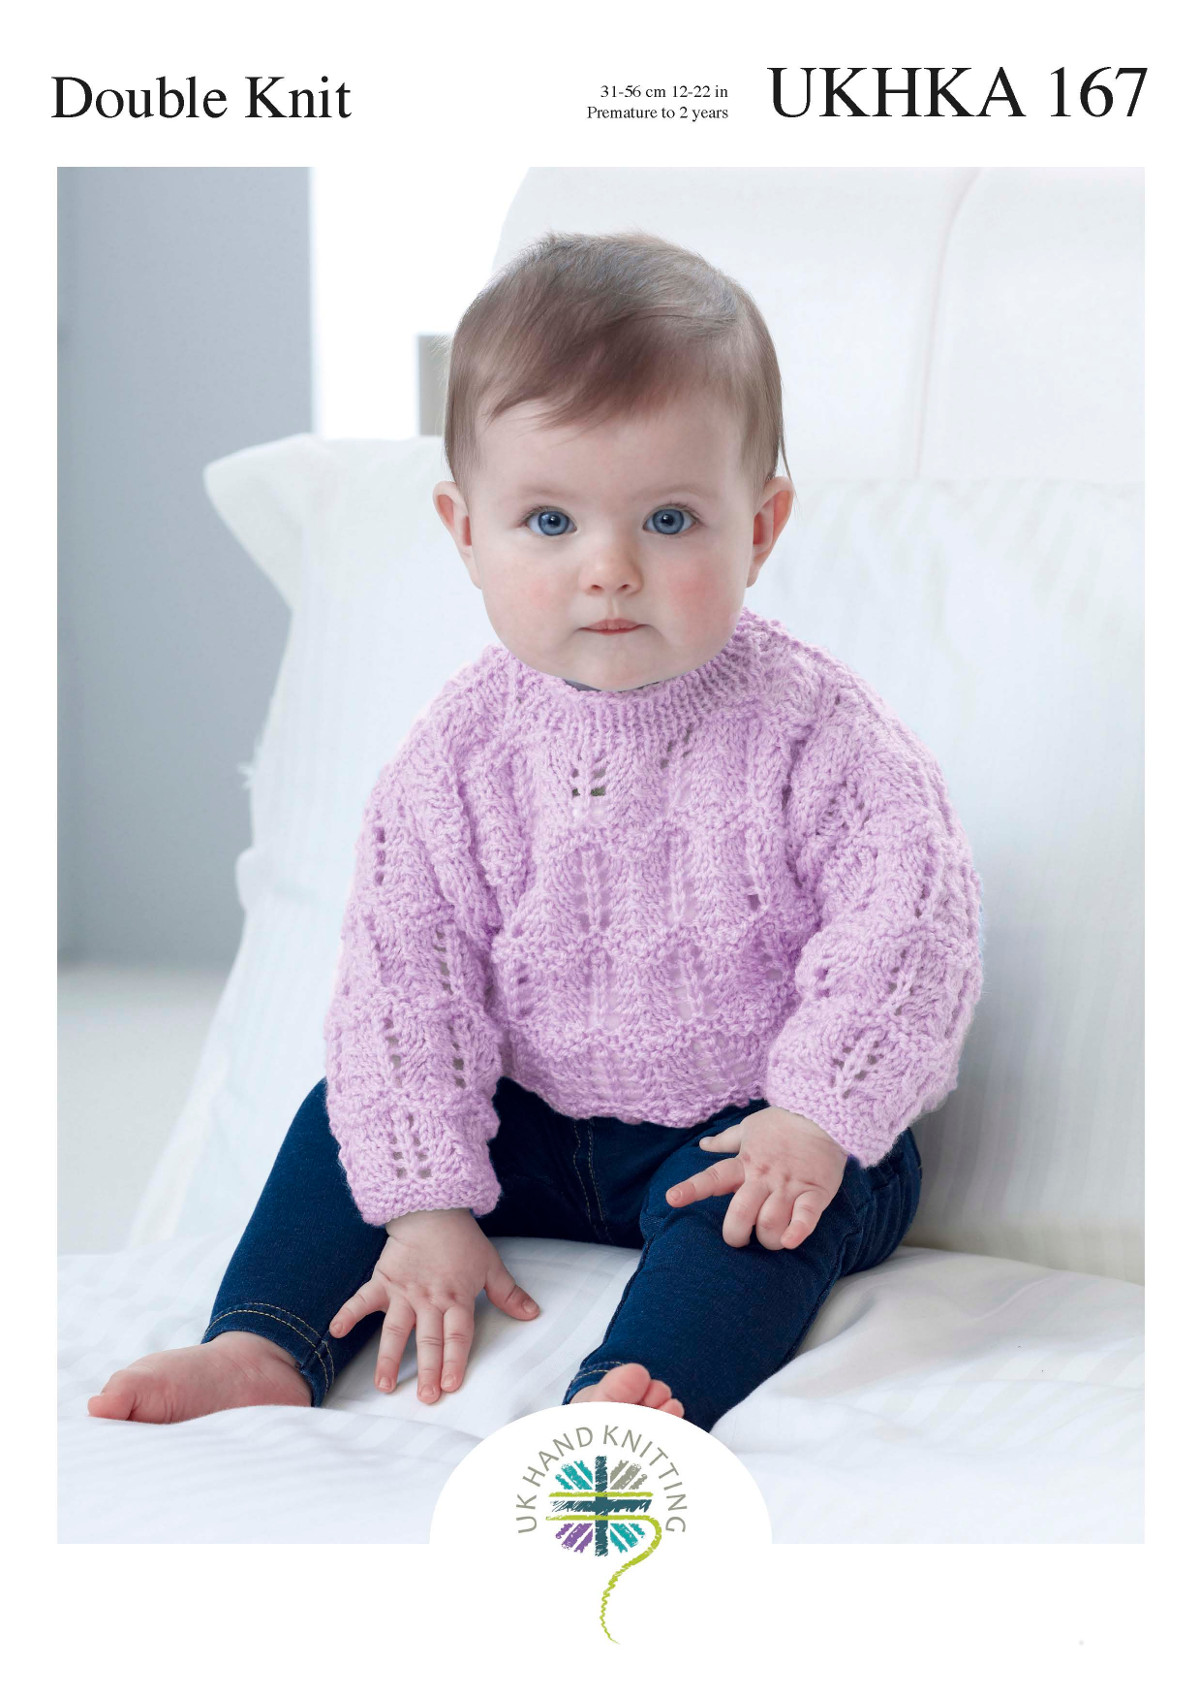 Double Knitting DK Pattern Baby Cabled Round or V Neck Cardigan Jumper UKHKA 176